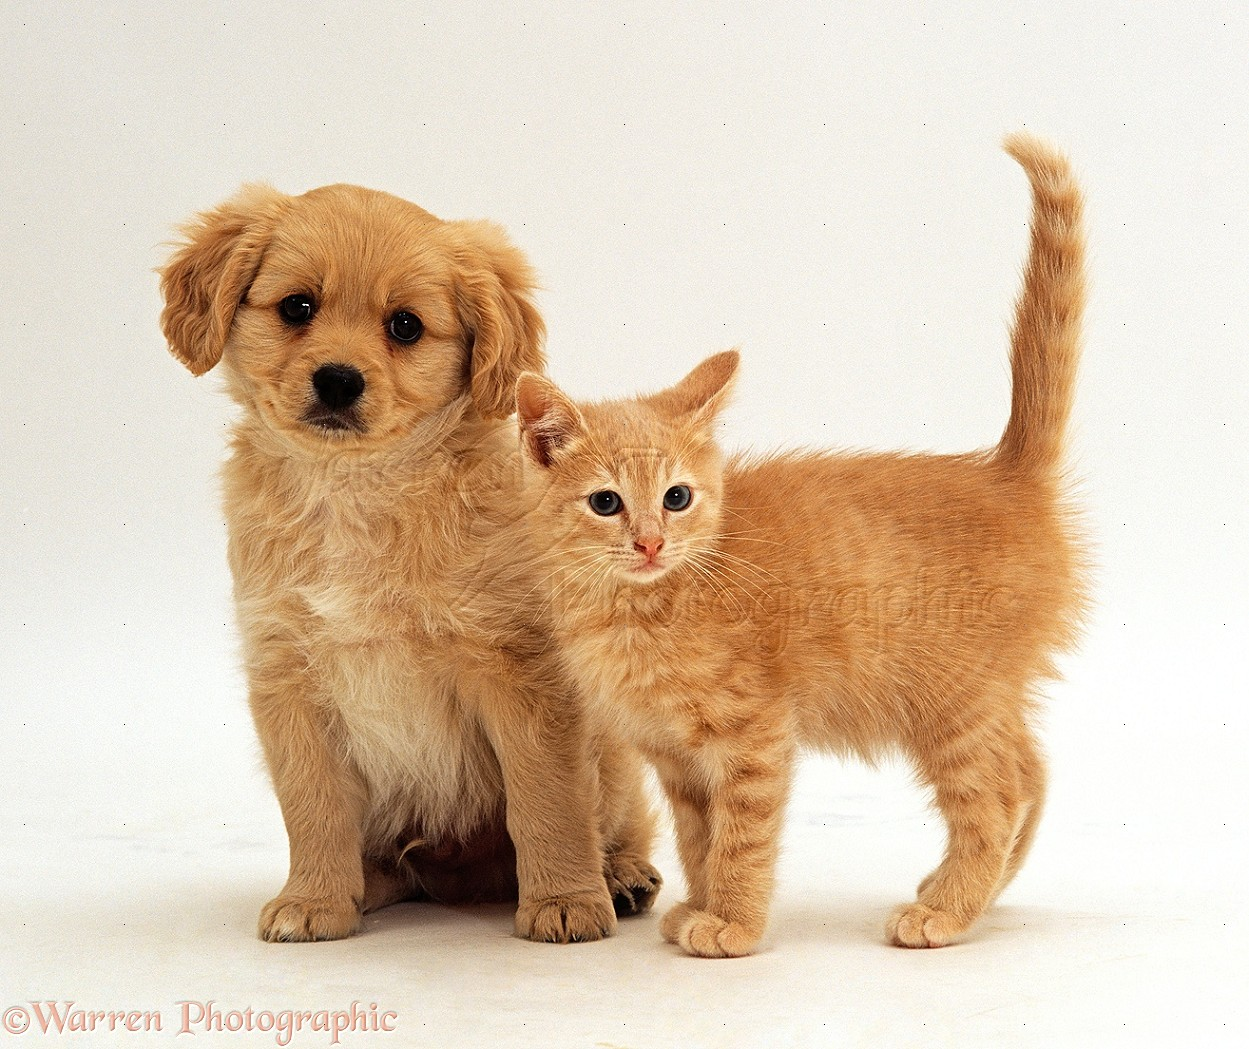 WP24085 Cavalier x Spitz puppy with ginger kitten, both 8 weeks old.